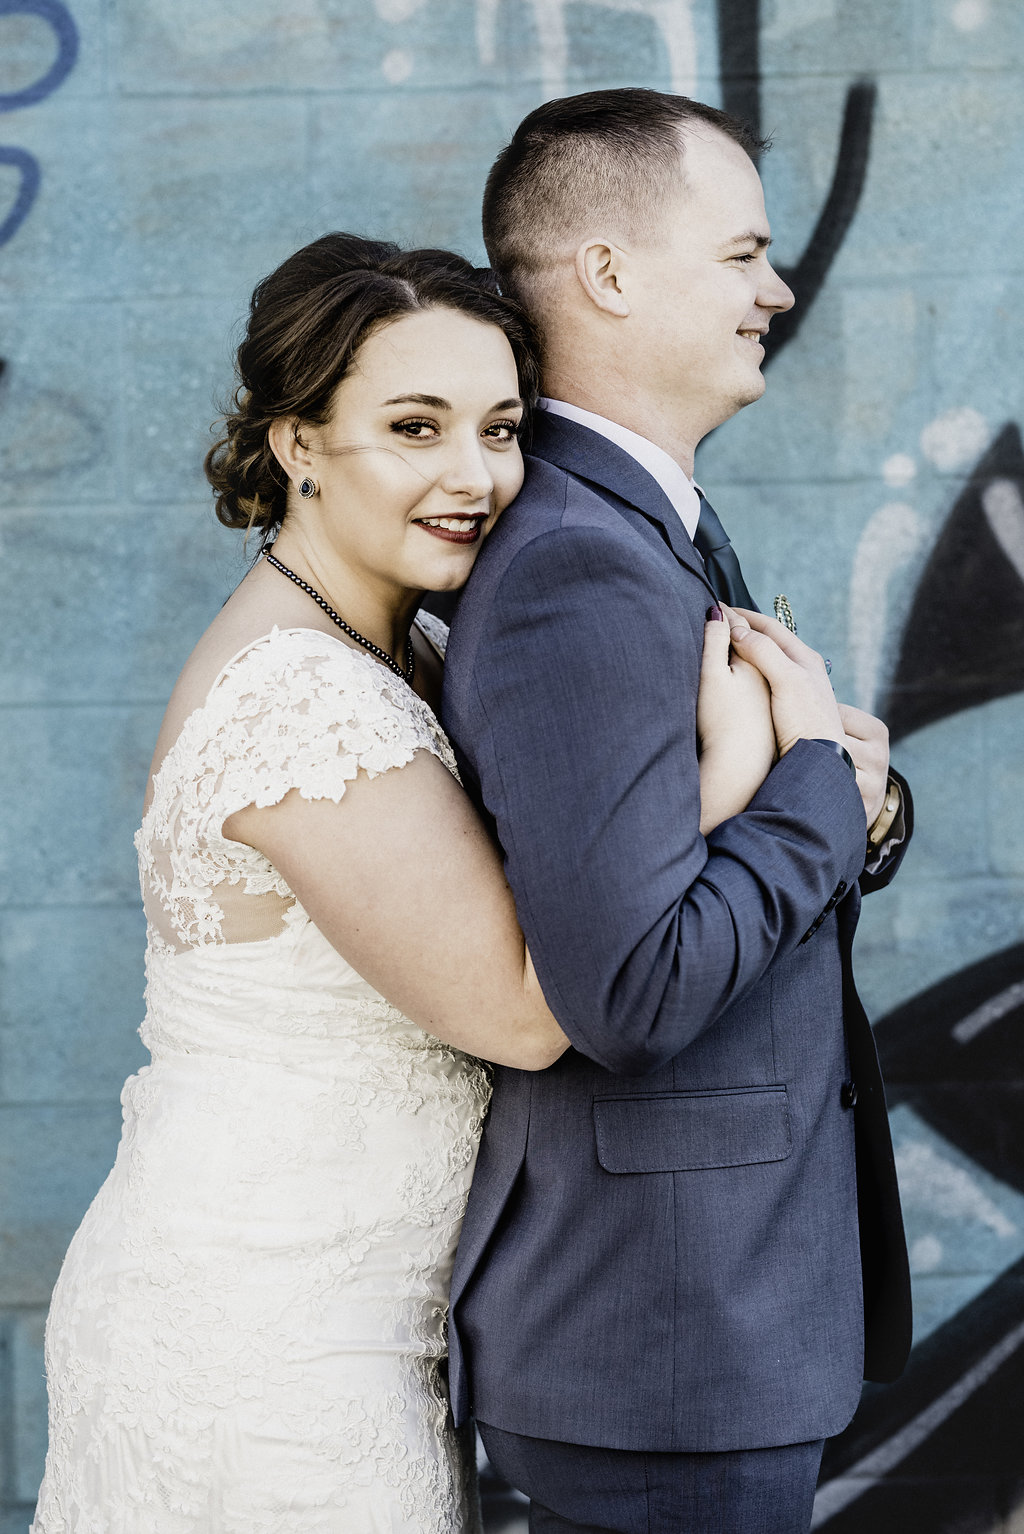 Graffiti Infused City Wedding Inspiration in Pittsburgh Strip District (127).jpg